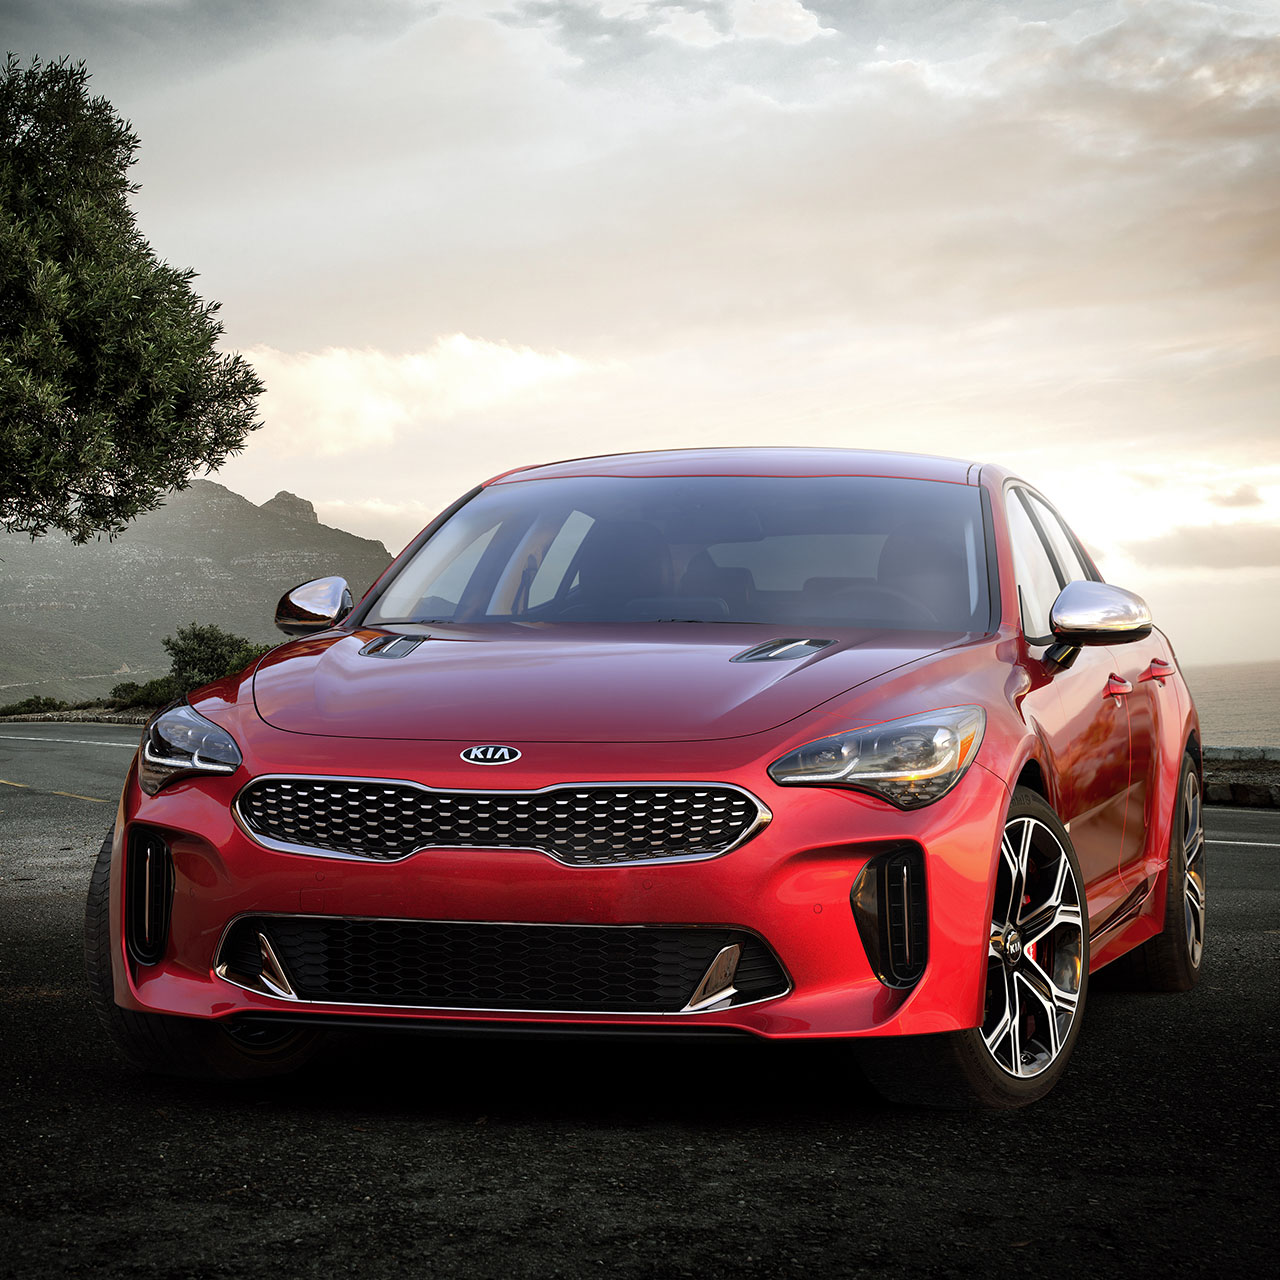 2019 Kia Stinger for Sale near Pipe Creek, TX